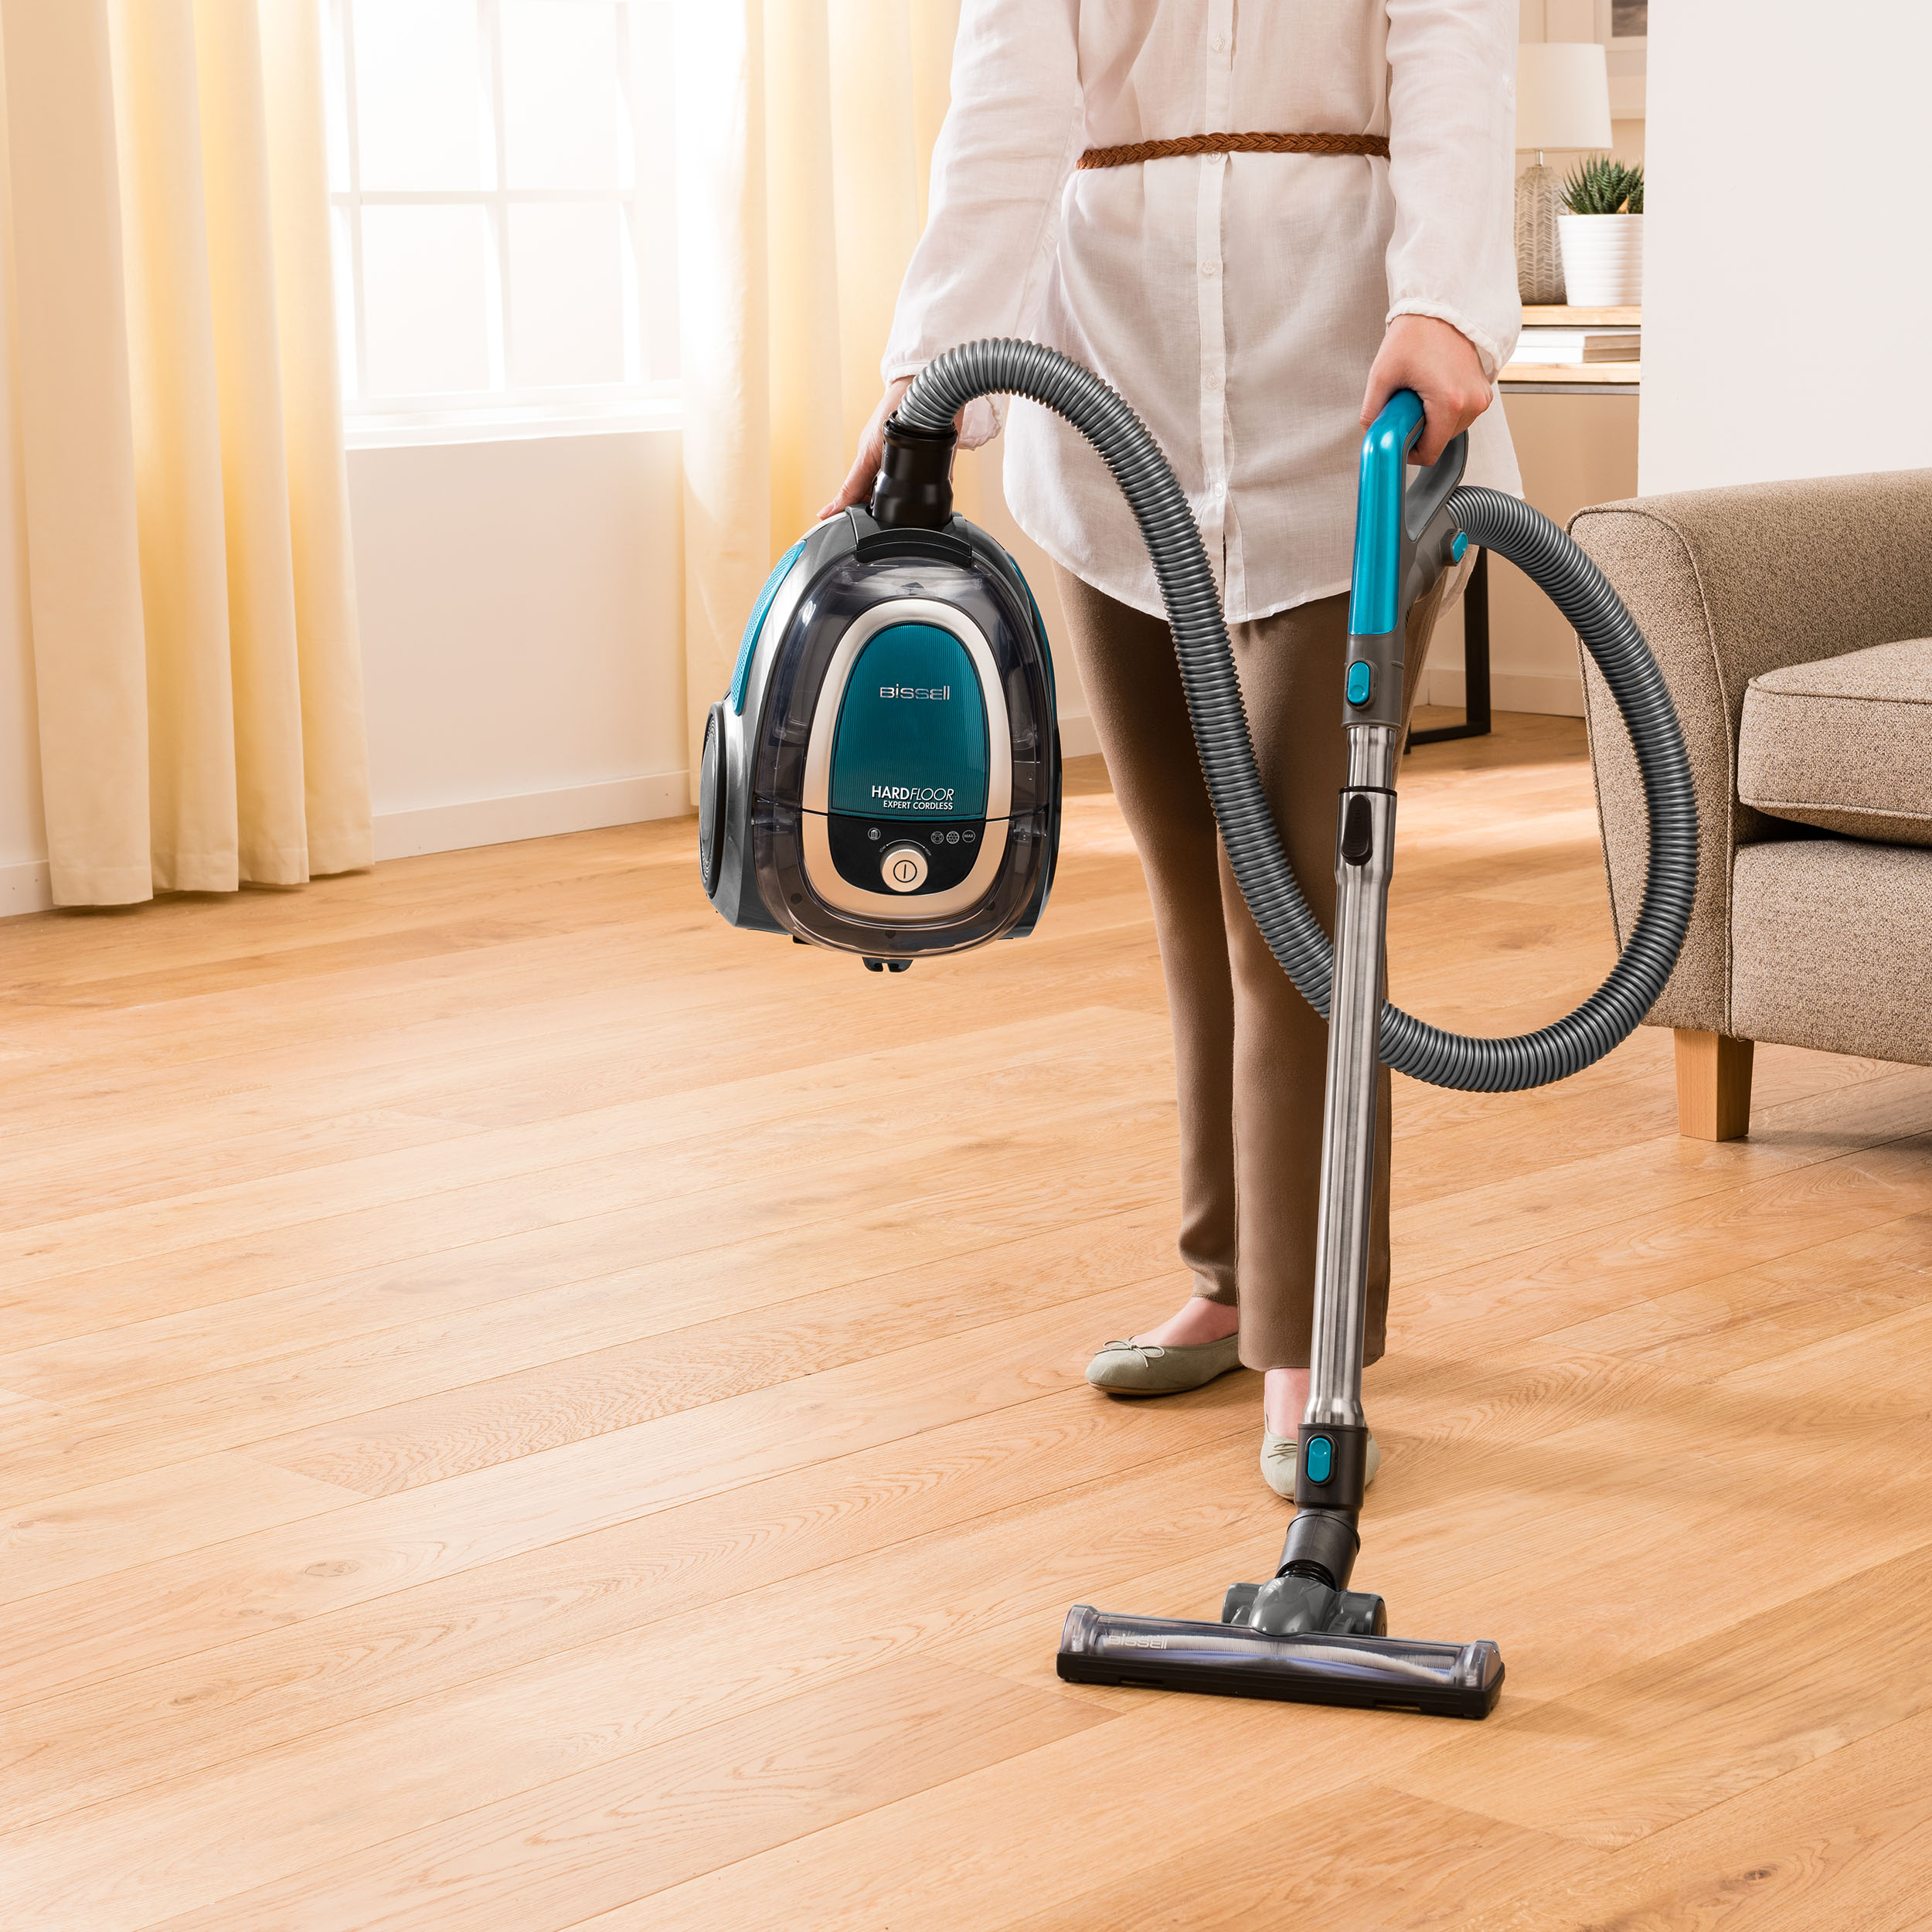 floor footage vacuum vksesr with cleaning house video wood cleaner stock videoblocks